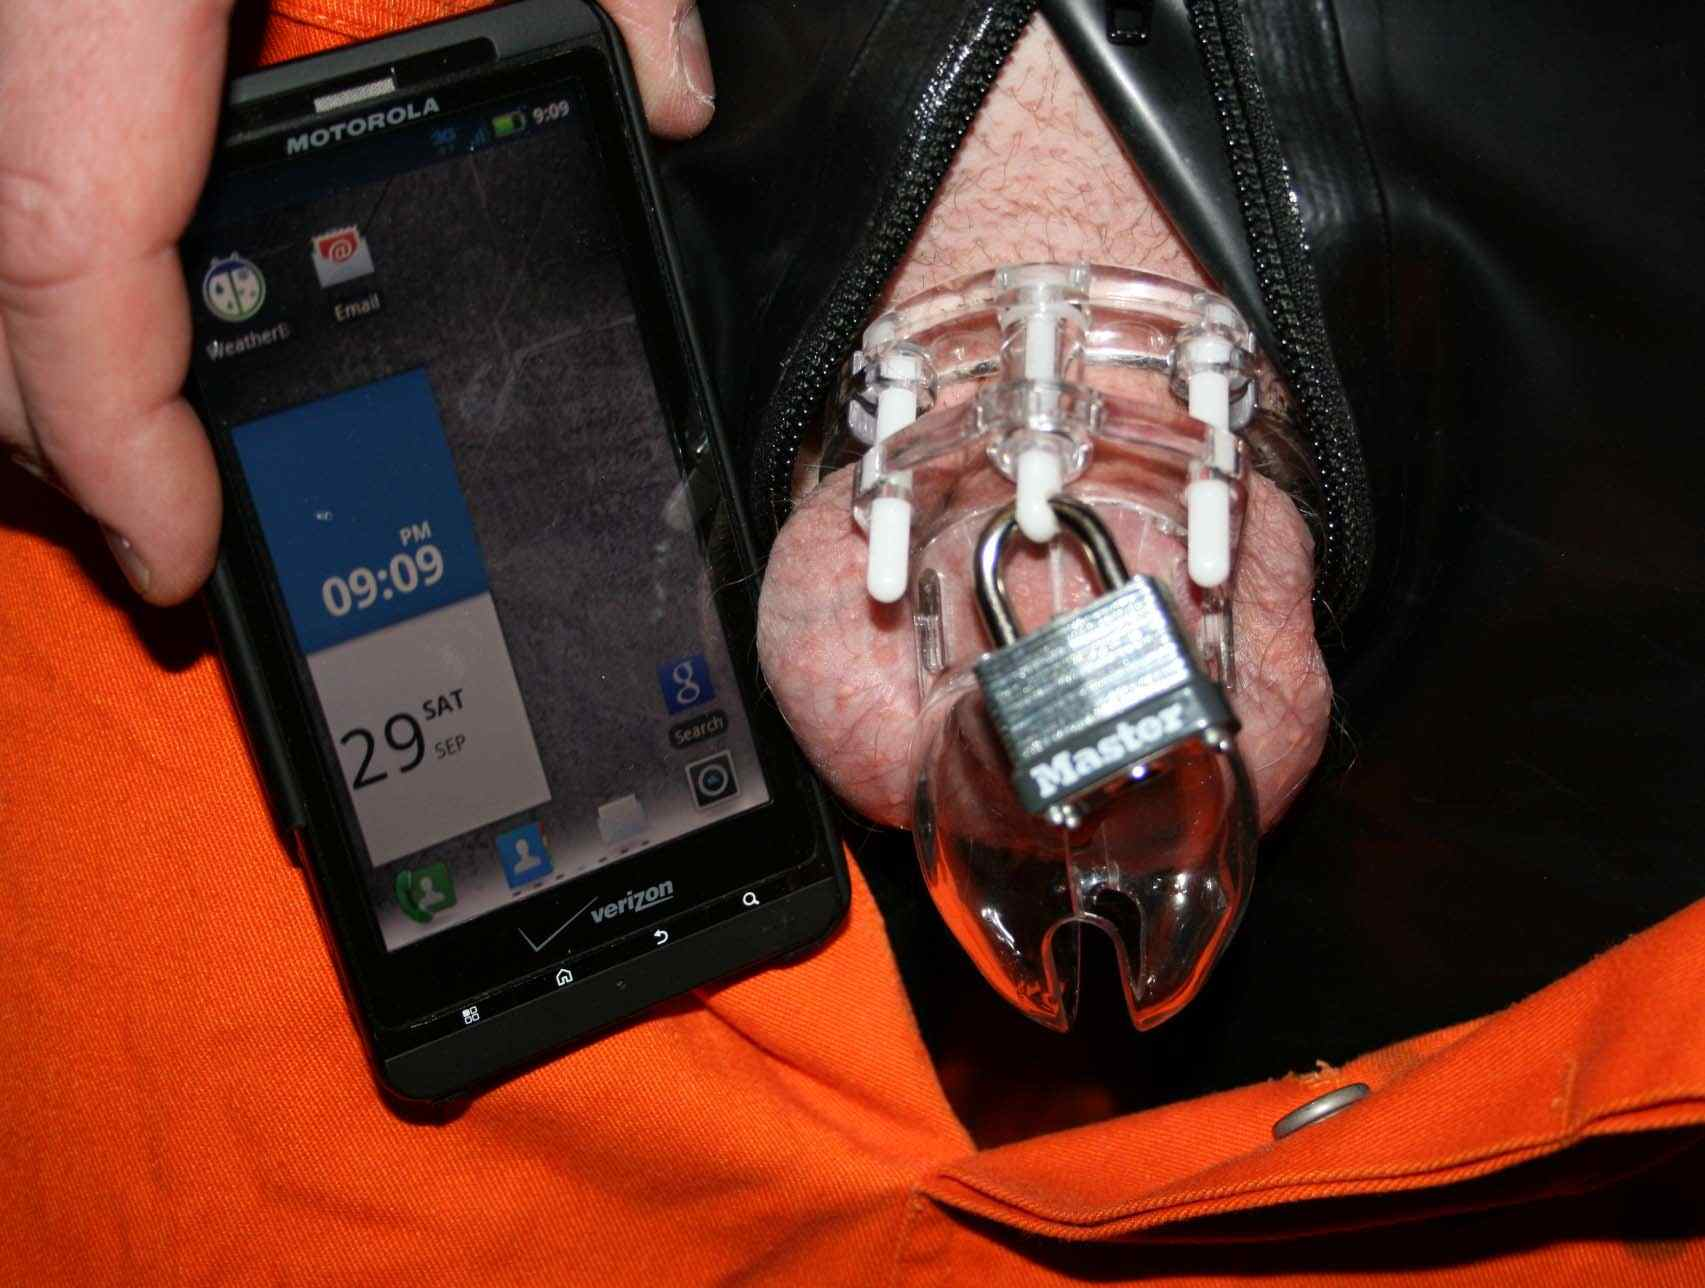 male chastity devices 06